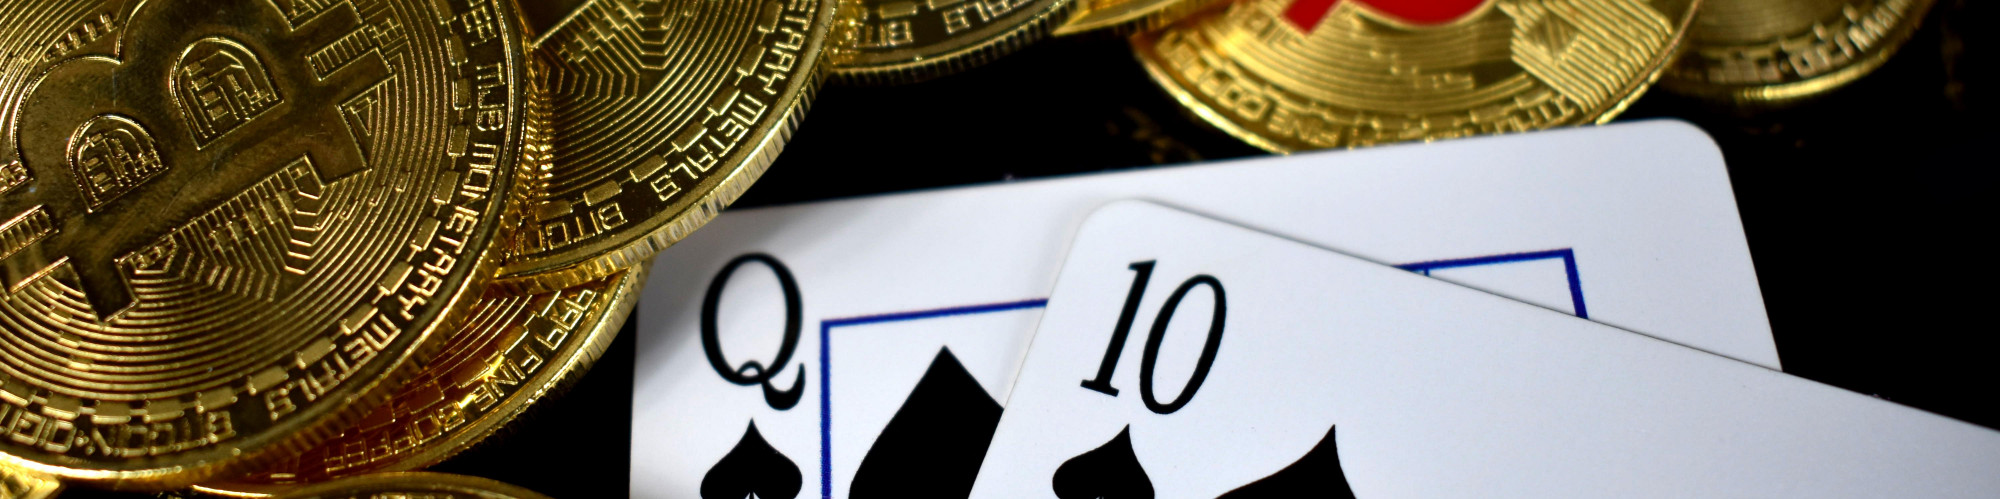 Bitcoin poker habits to improve your online play